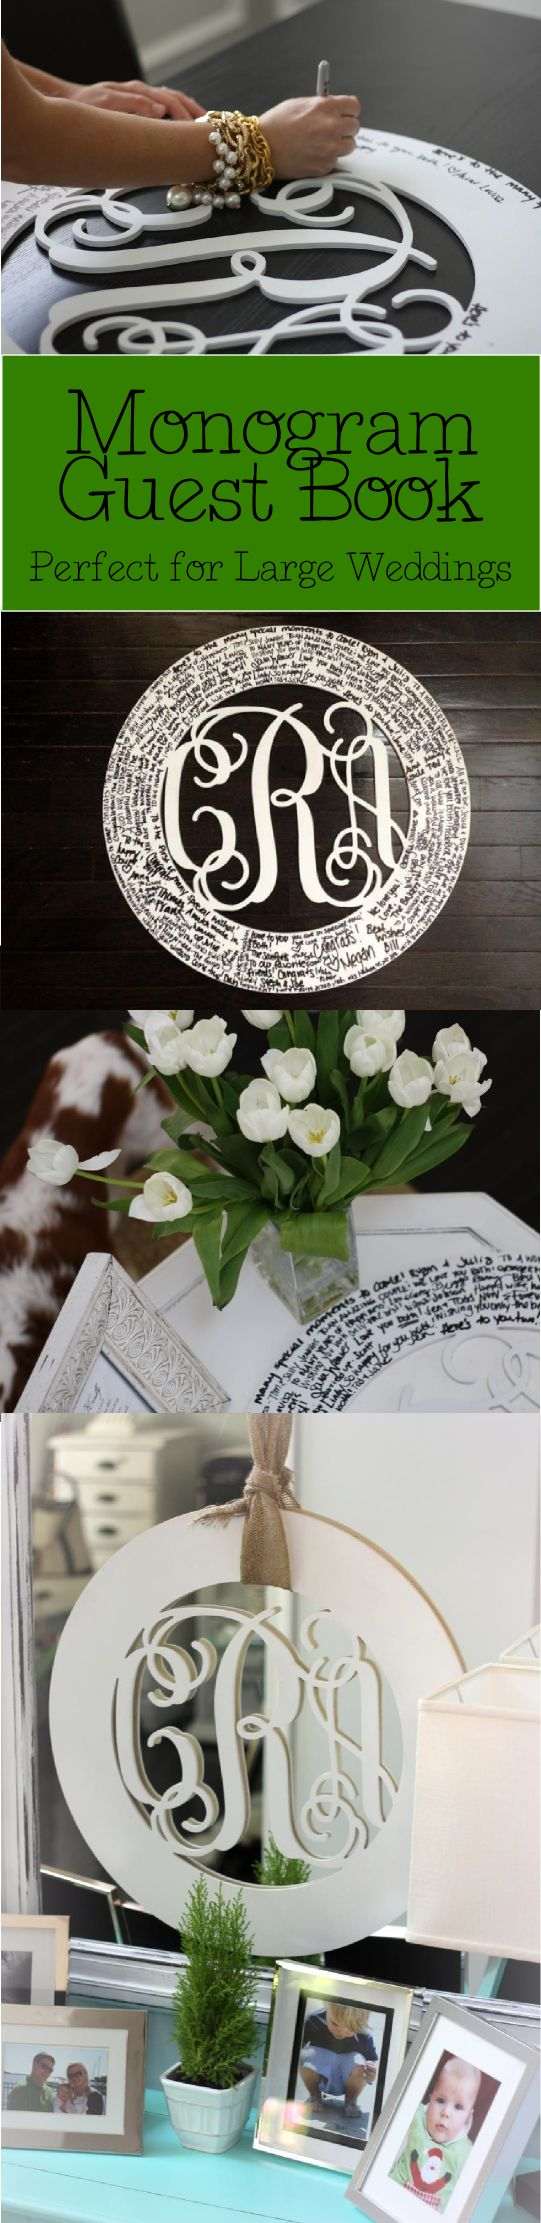 The perfect wedding guest book!  Wedding guests write messages around your monogram.  The monogram can still be seen clearly and is surrounded with sentiments from people you care the most about.